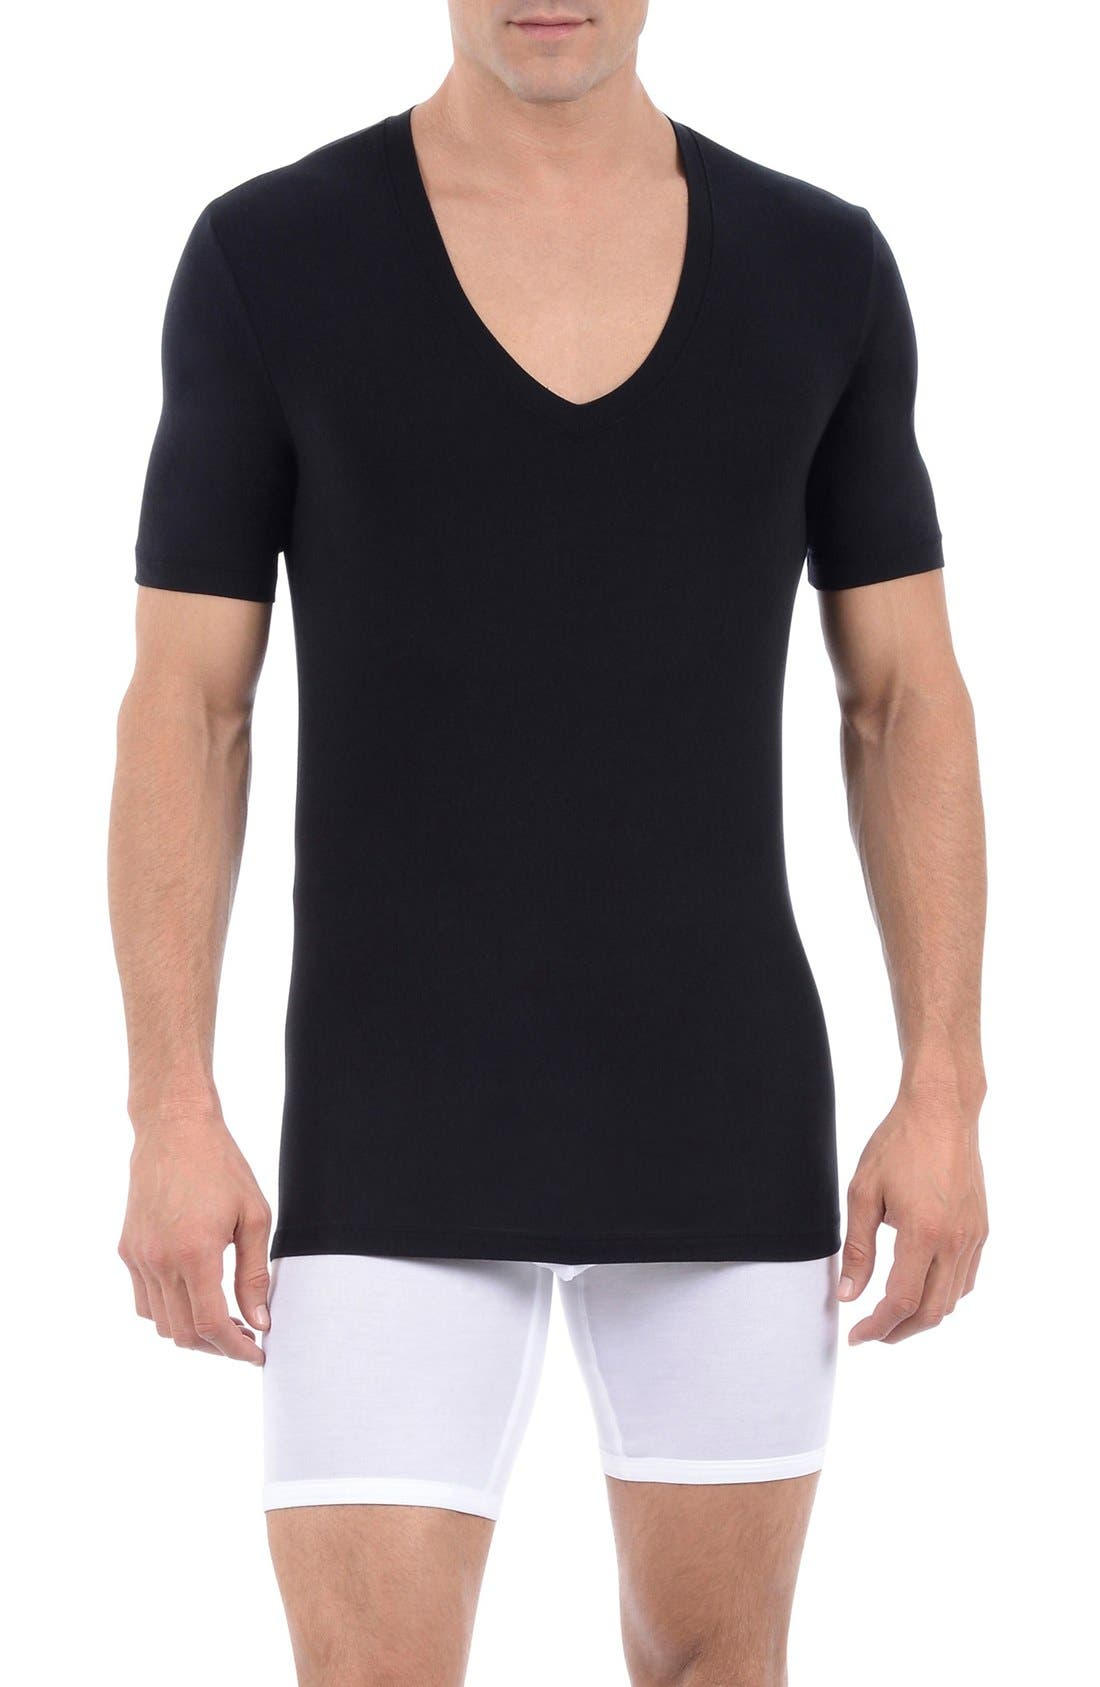 Tommy John 'Cool Cotton' Deep V-Neck Undershirt